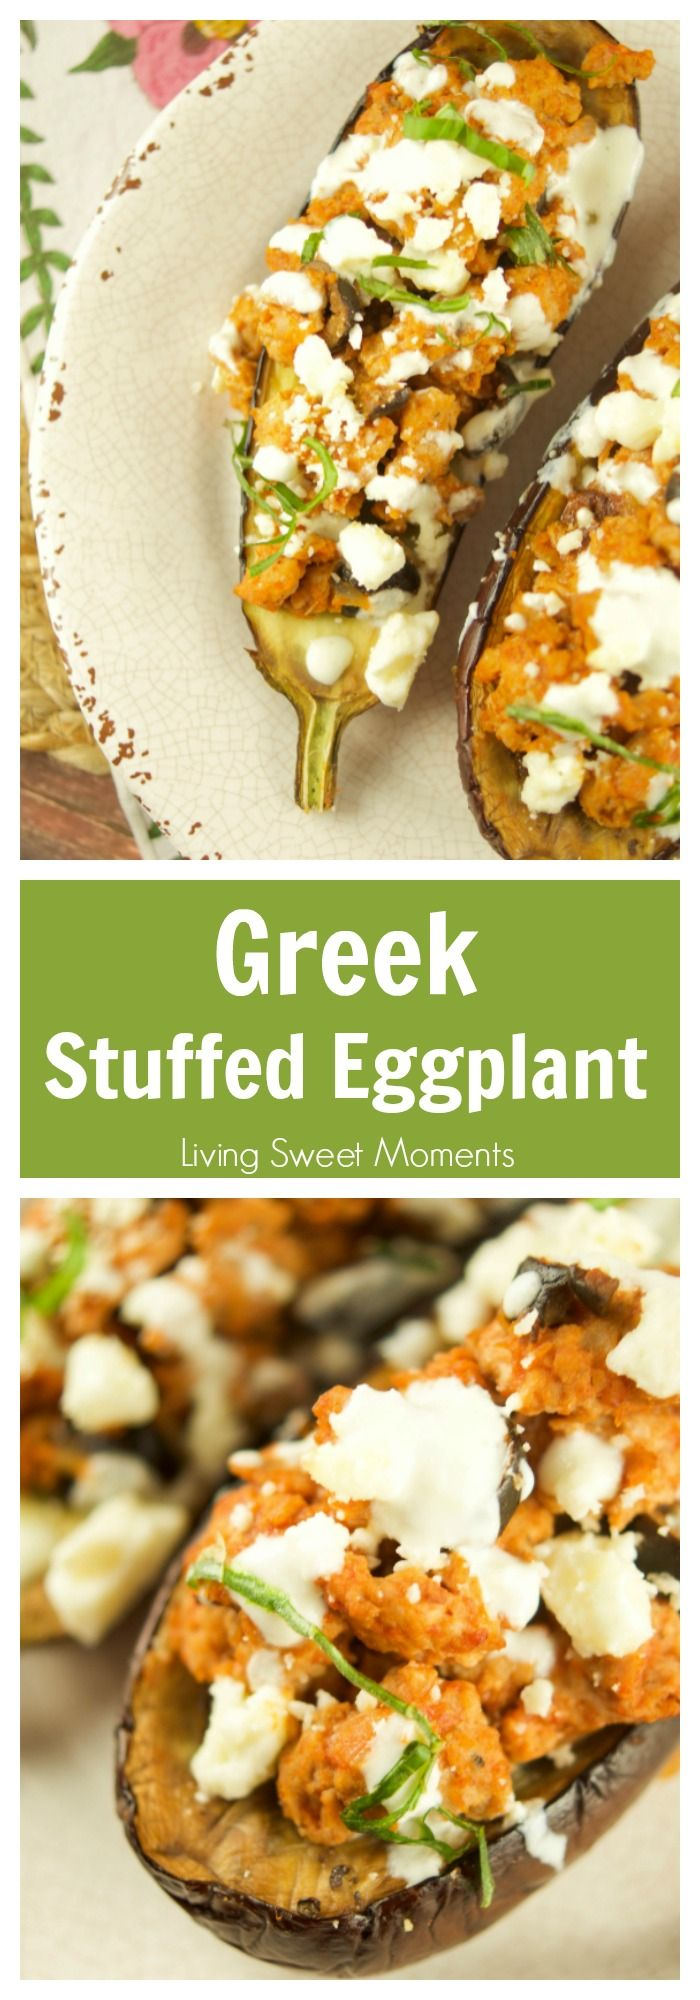 This tasty Greek Stuffed Eggplant is made with meat, kalamata olives and topped with feta cheese and tzatziki sauce. The perfect quick weeknight dinner idea